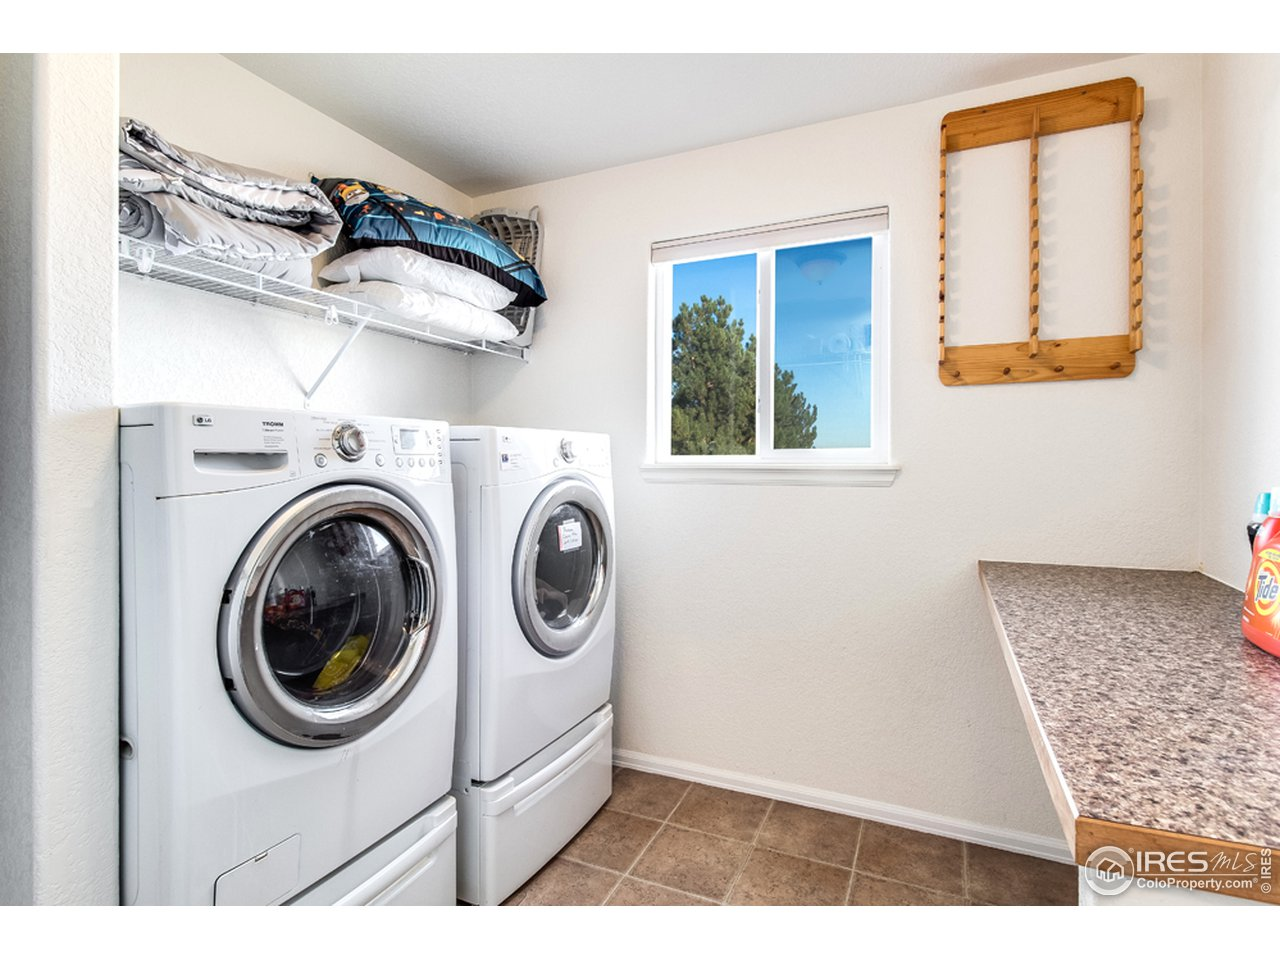 Laundry Room with Folding Table , Hanging Rack and Storage Space